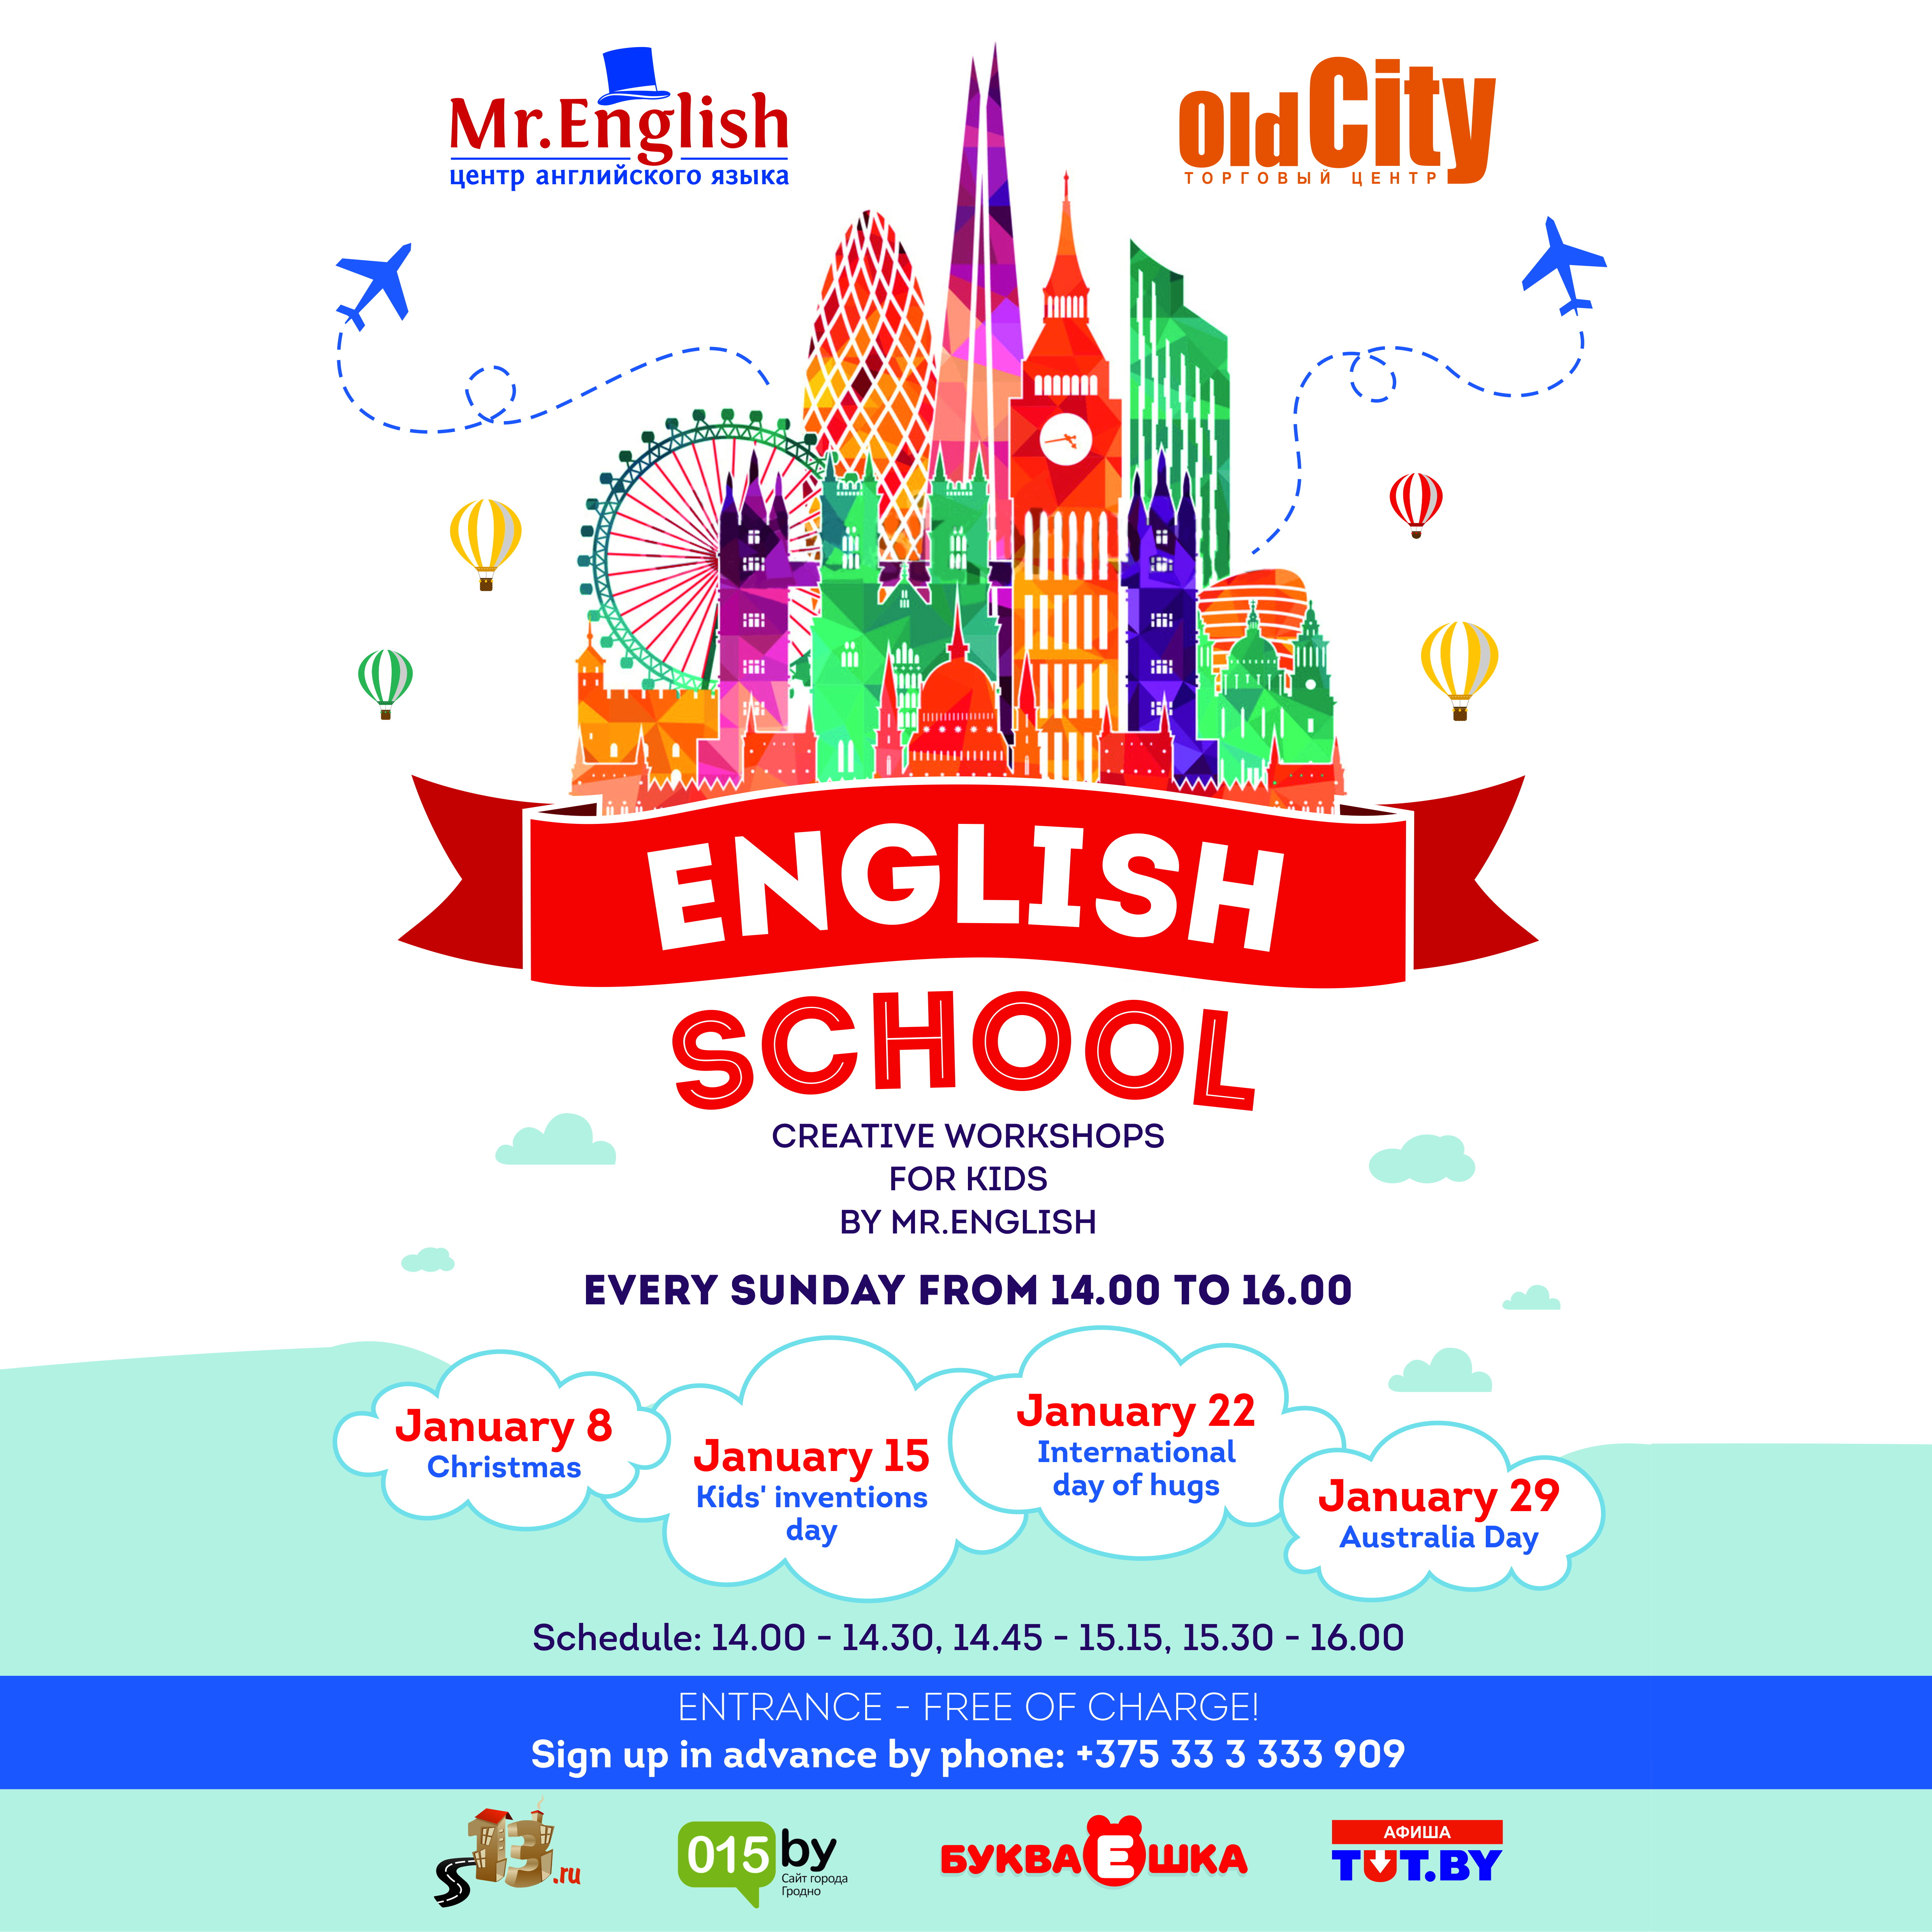 Creative workshops for kids by mr. English